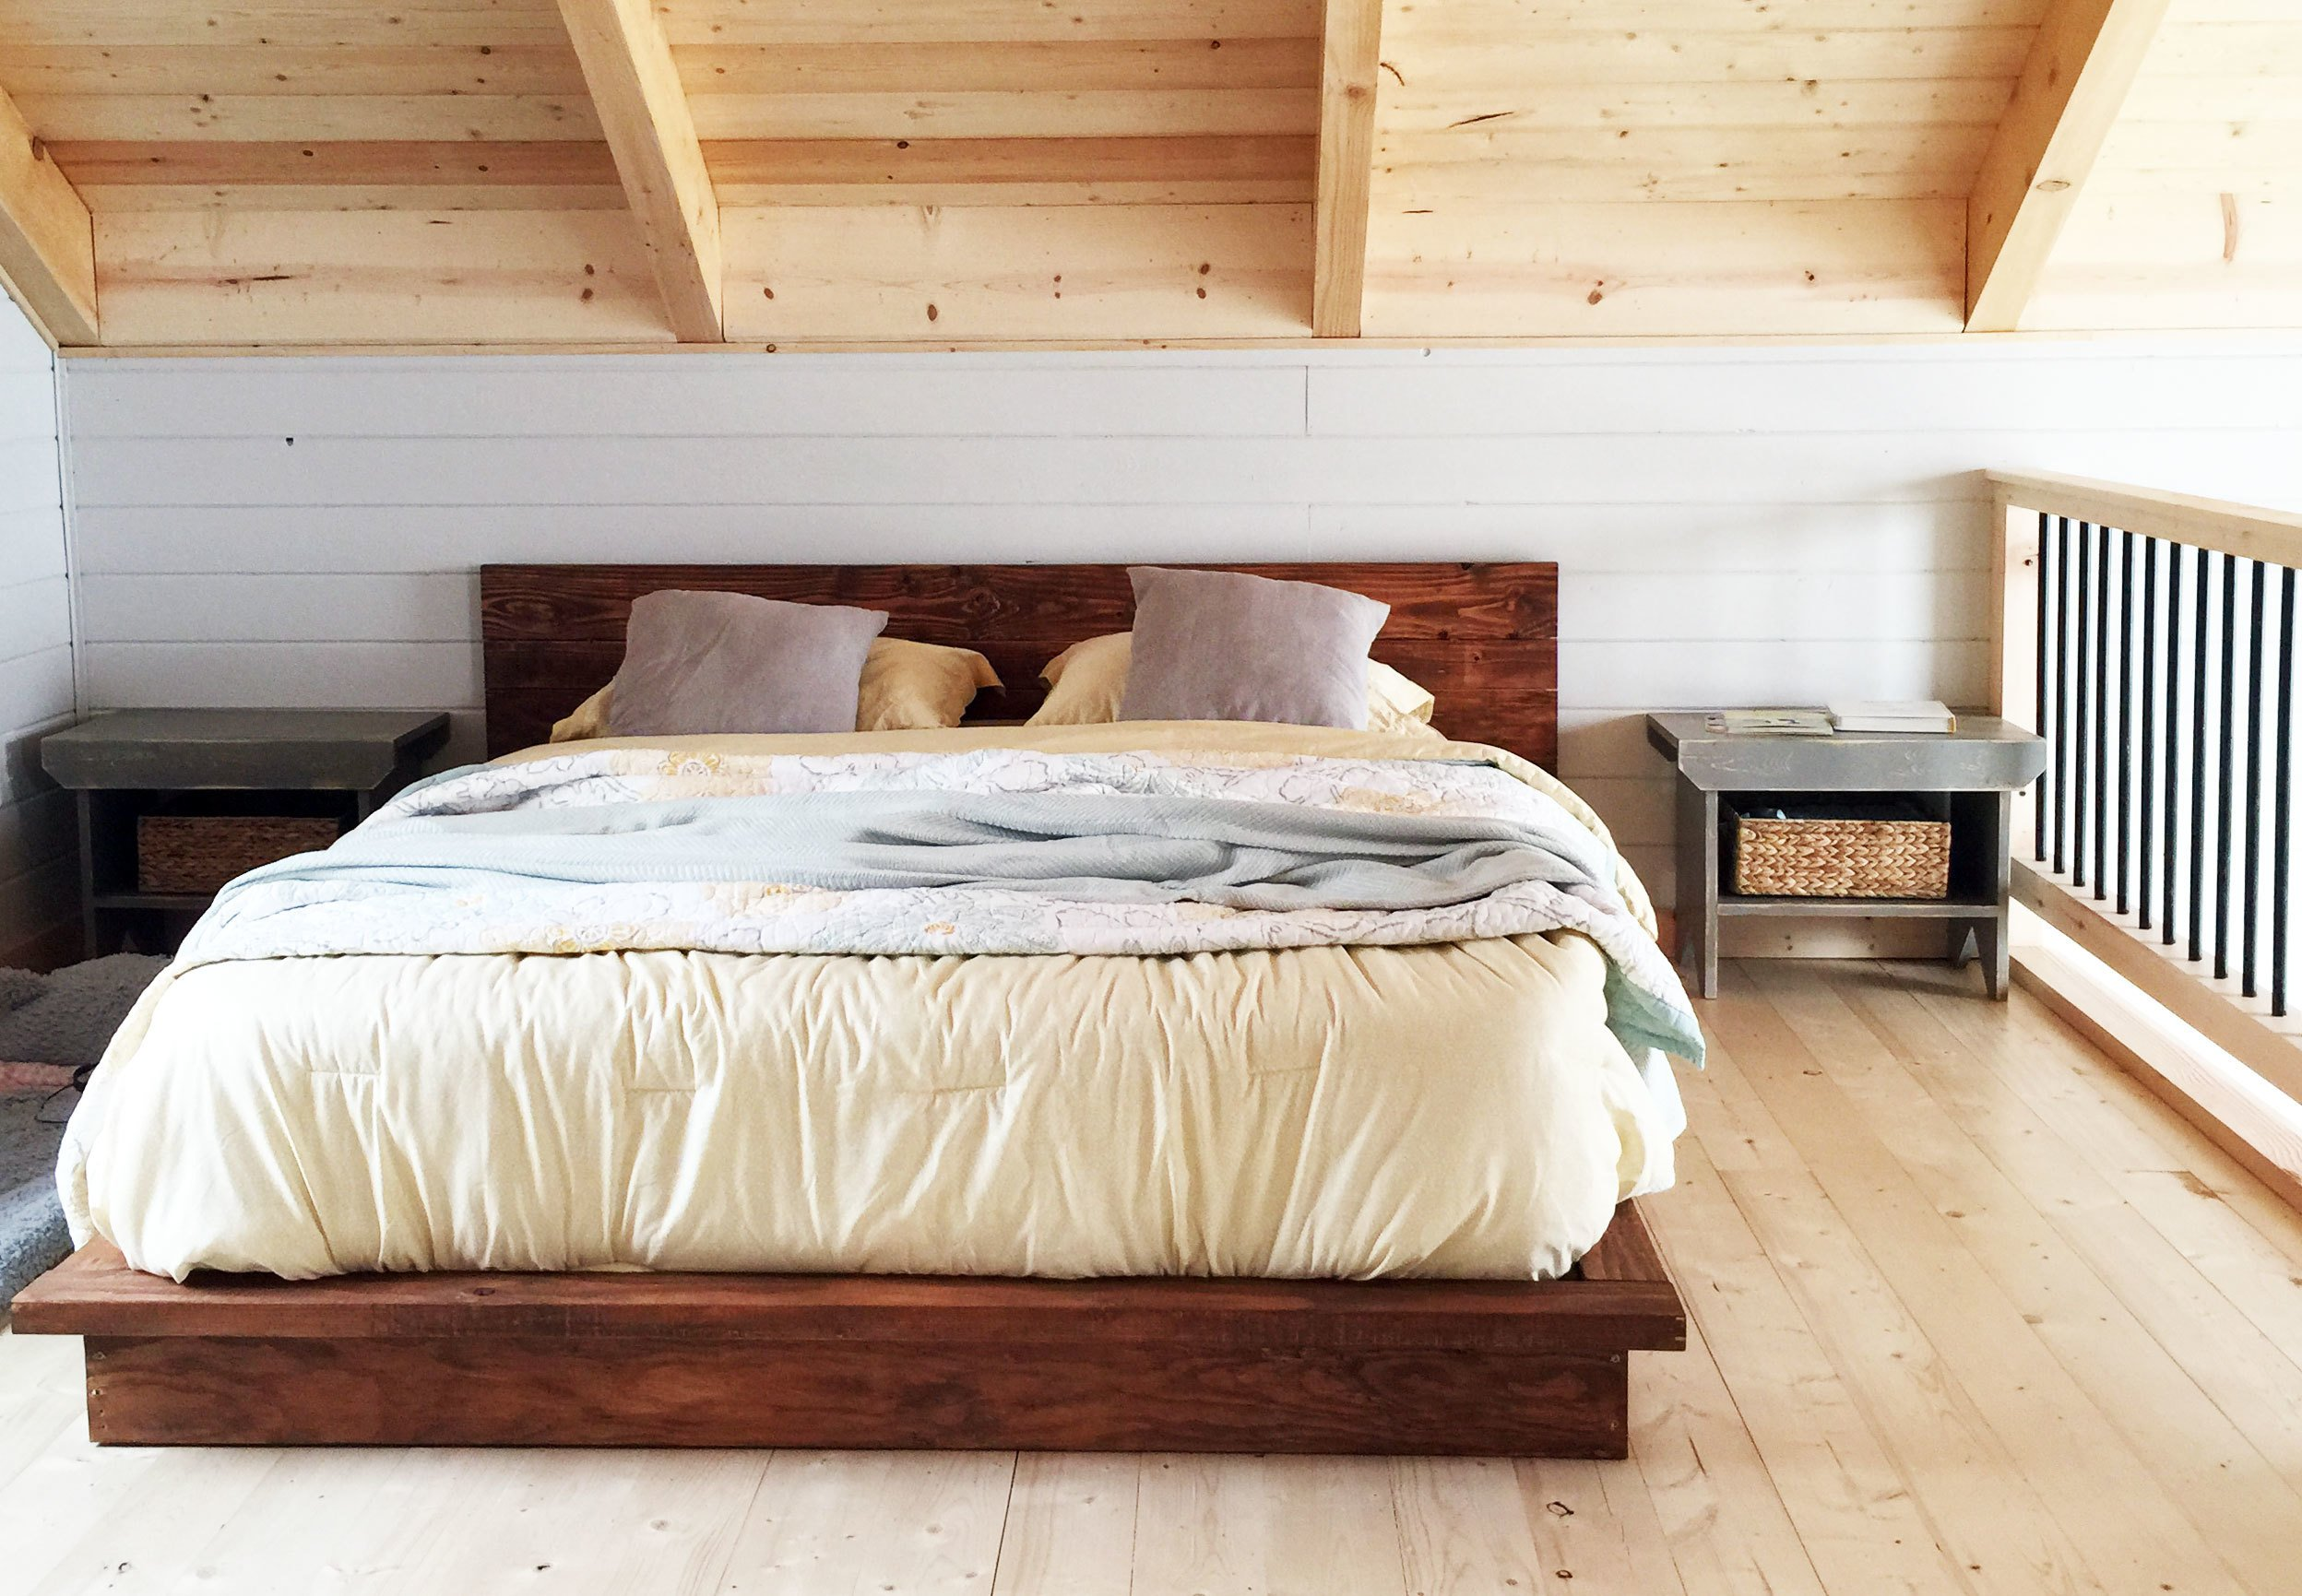 Wooden Sunken Bed Frame